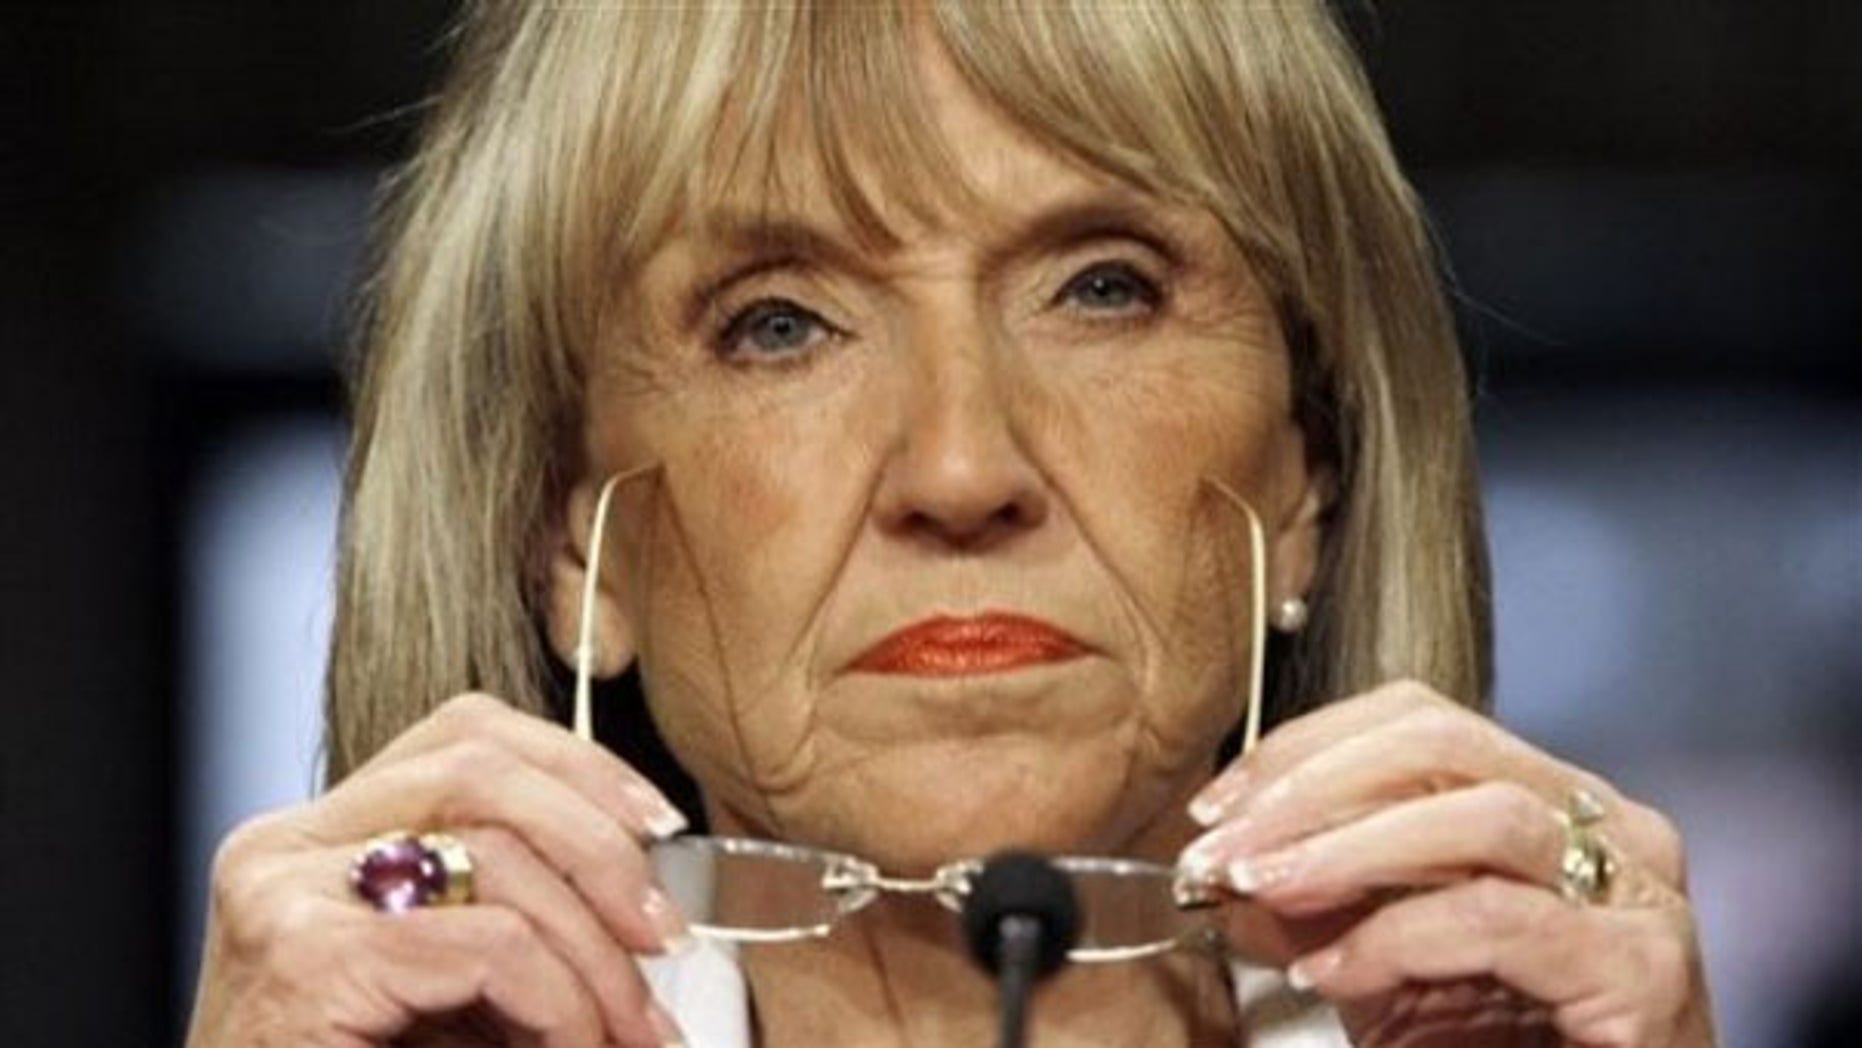 Arizona Gov. Jan Brewer listens to a question as she testifies during a U.S. Senate committee meeting on border violence April 20, 2009, in Phoenix. (AP Photo)